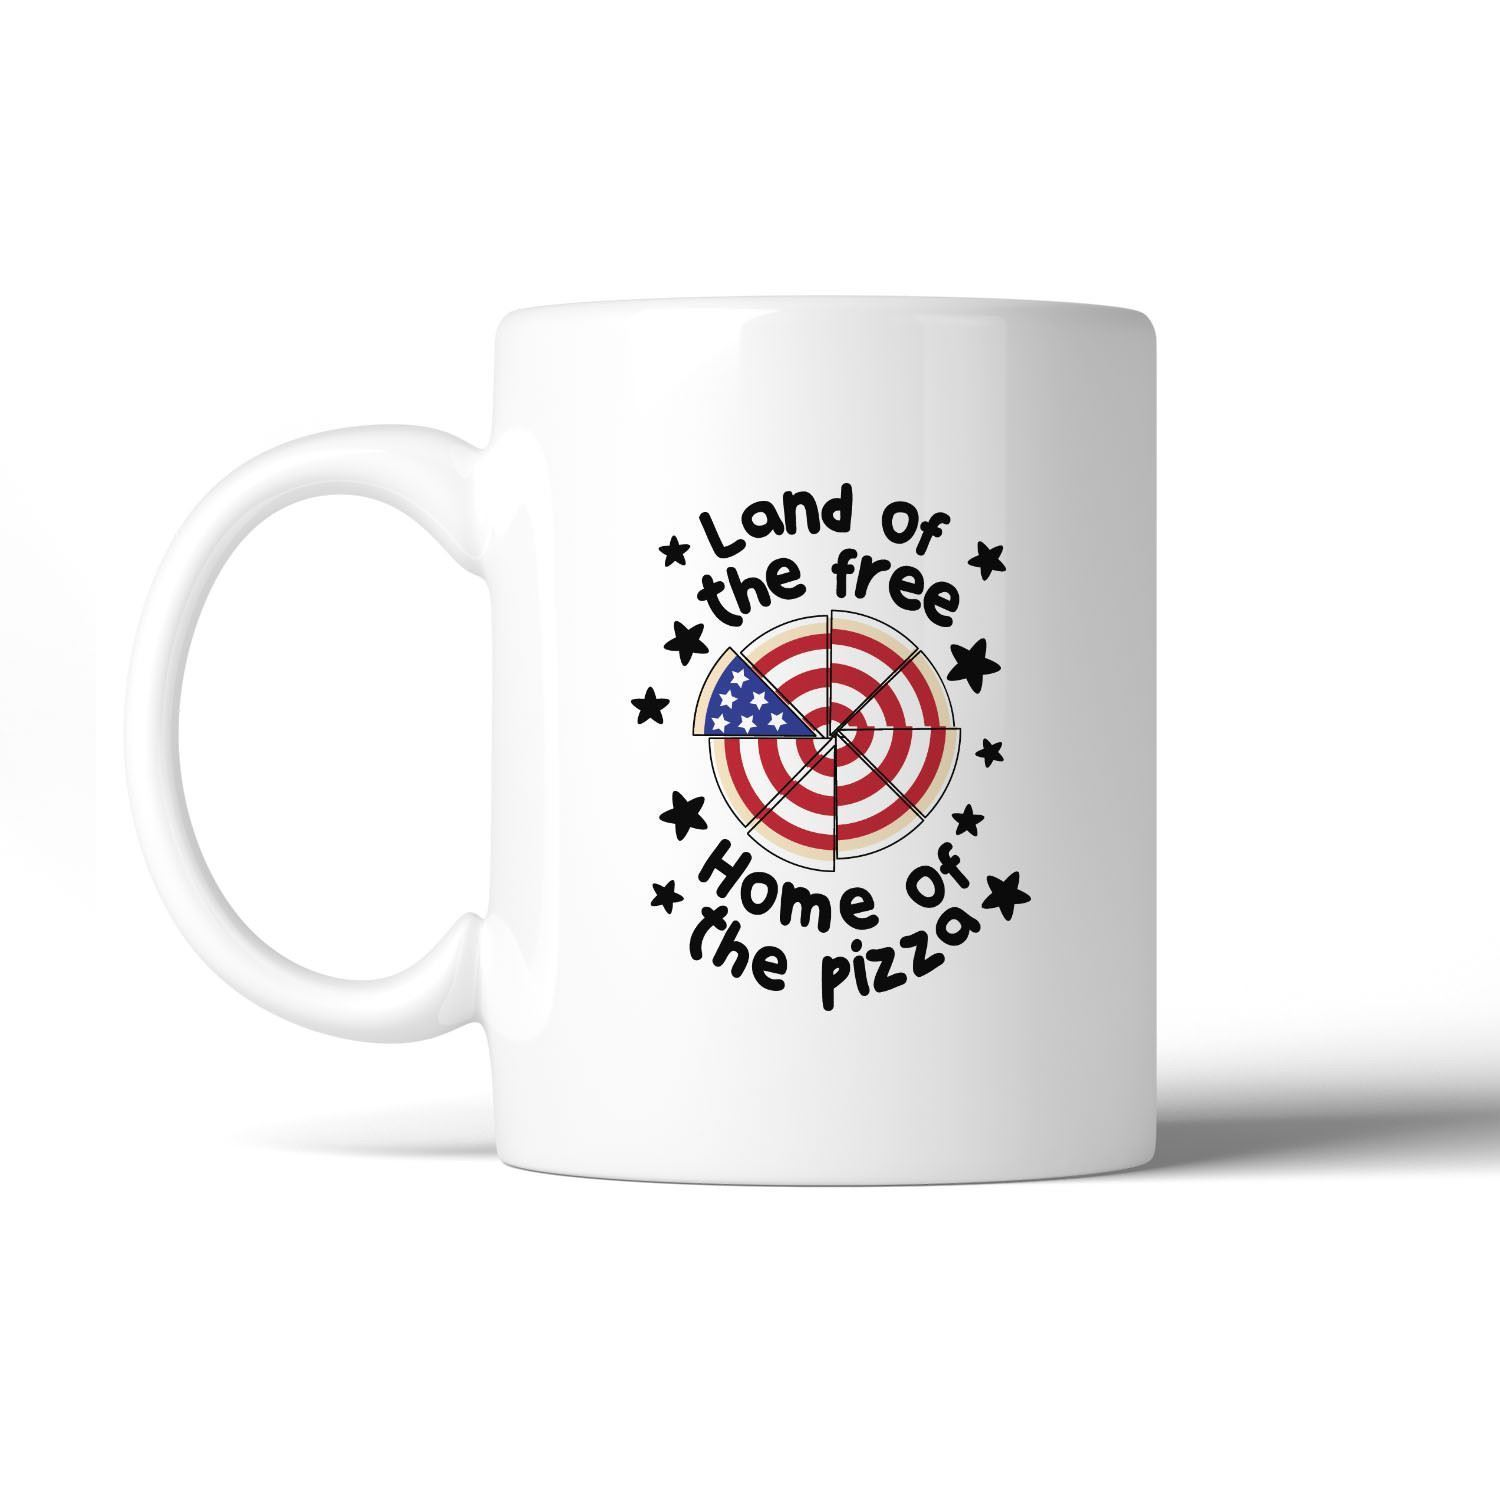 Home Of The Pizza Funny Patriotic Gift Coffee Mug For Pizza Lovers